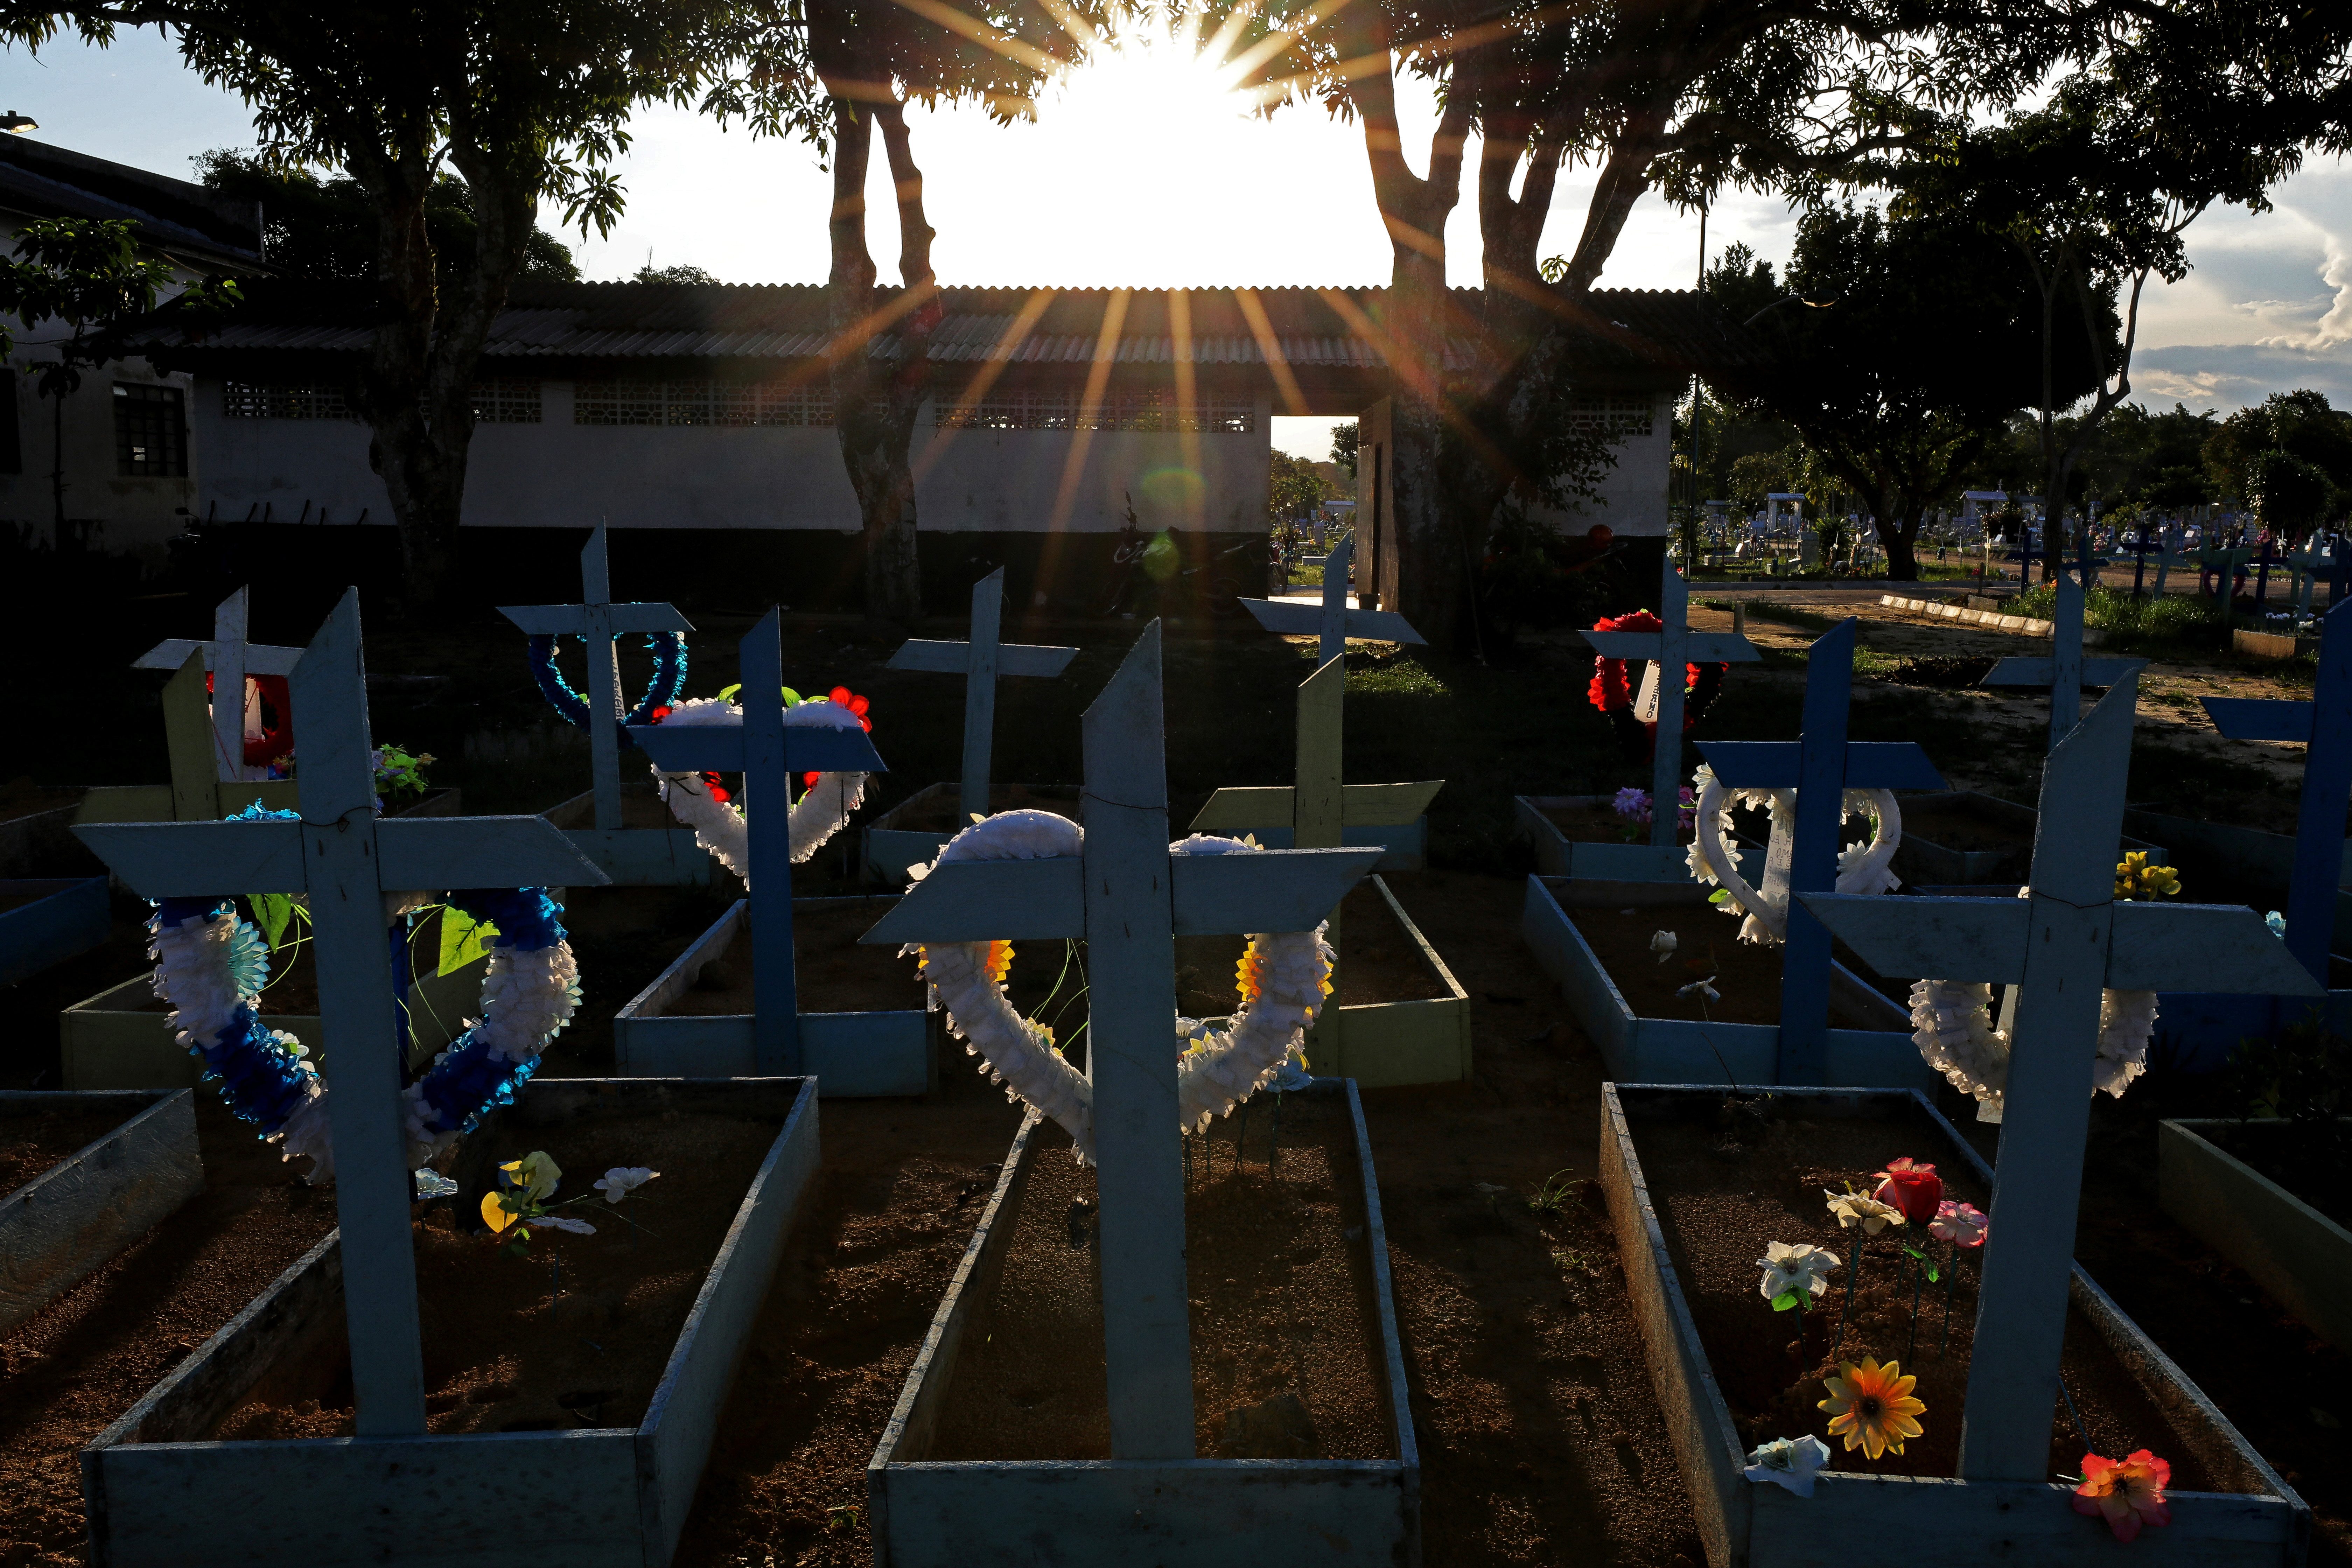 Graves of people who passed away due to the coronavirus disease (COVID-19) are pictured at the Parque Taruma cemetery in Manaus, Brazil May 20, 2021.REUTERS/Bruno Kelly